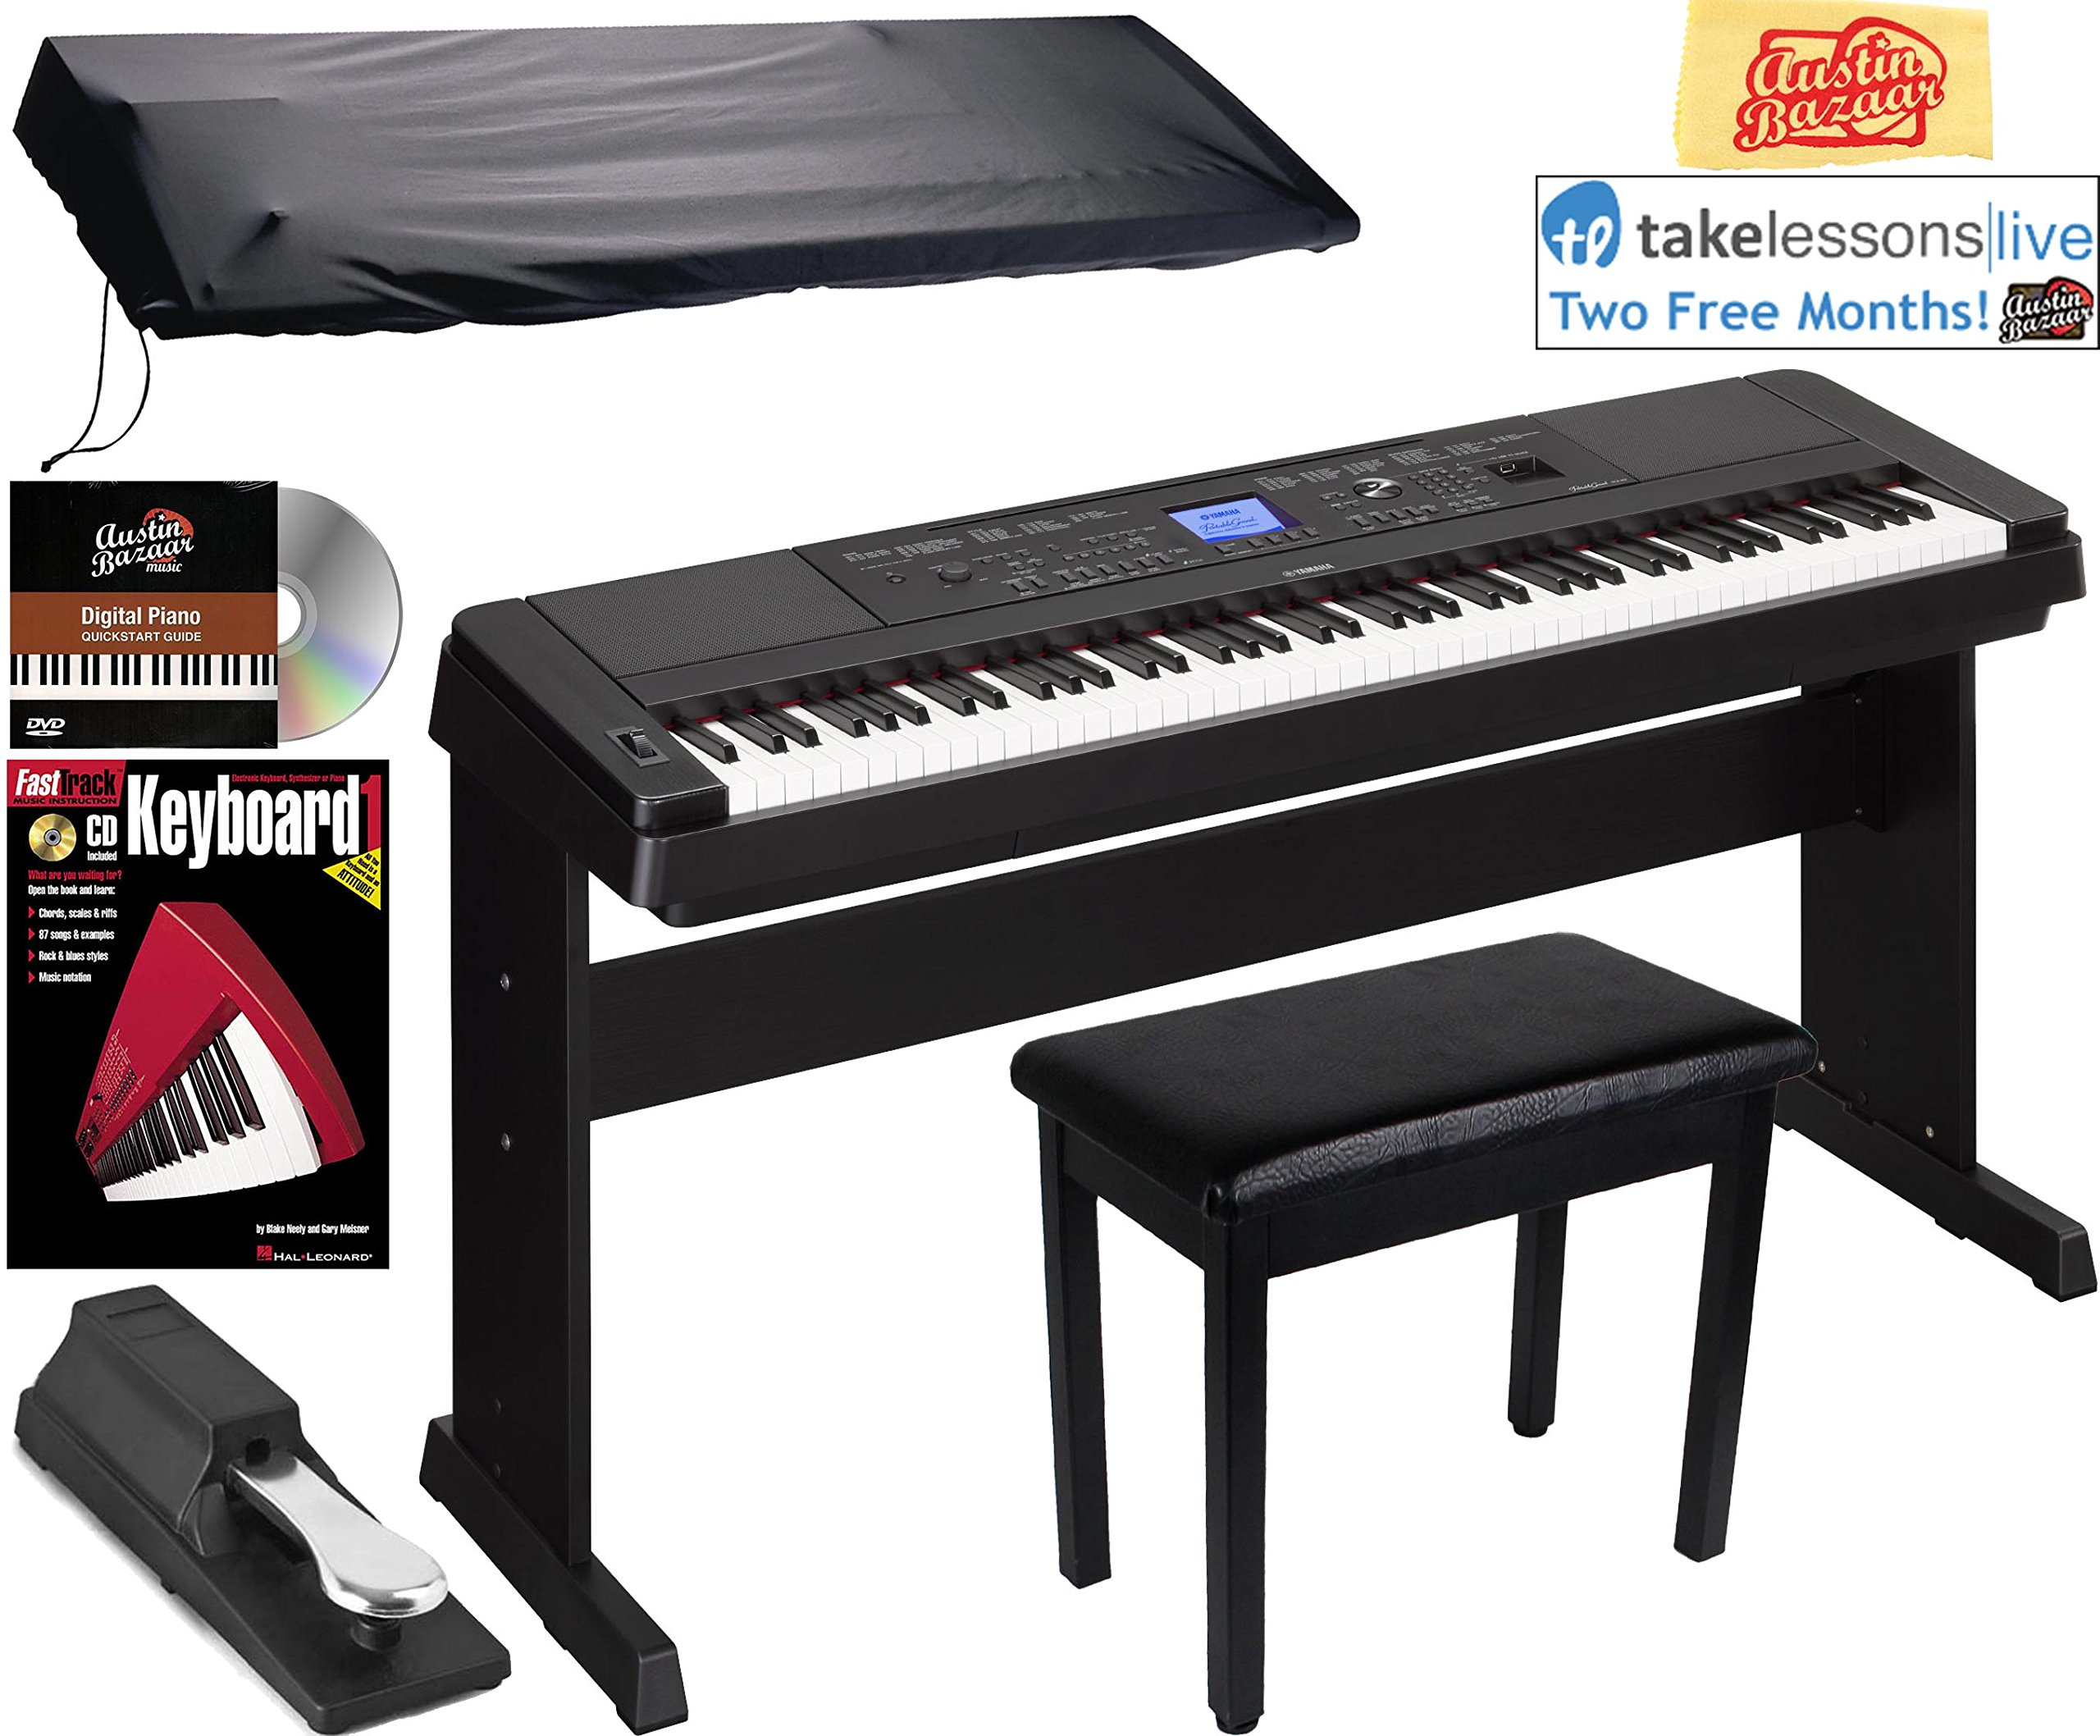 Yamaha DGX-660 Digital Piano - Black Bundle with Furniture Bench, Sustain Pedal, Dust Cover, Instructional Book, Online Lessons, Austin Bazaar Instructional DVD, and Polishing Cloth by YAMAHA